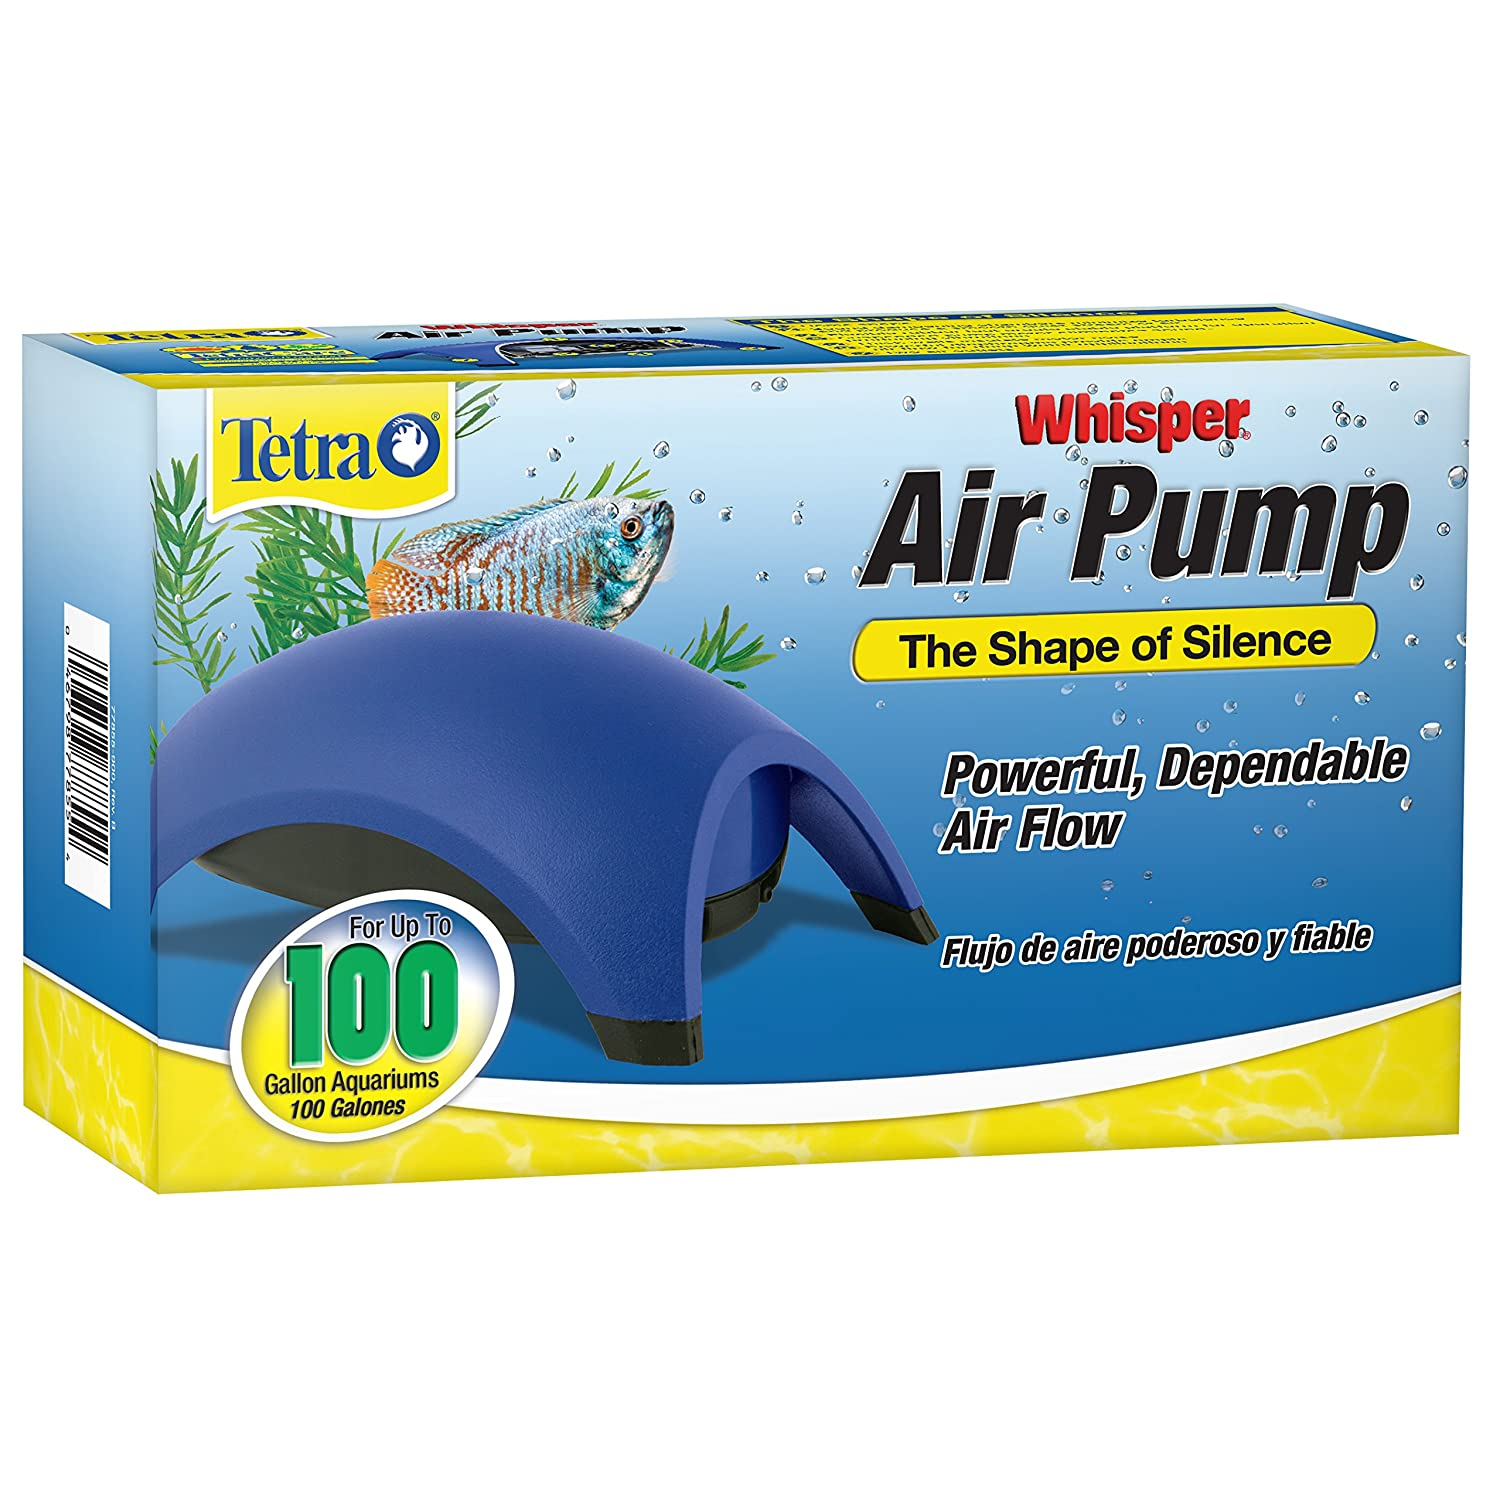 919Nc0VheXL._SL1500_ amazon com tetra 77855 whisper air pump, 100 gallon aquarium  at edmiracle.co